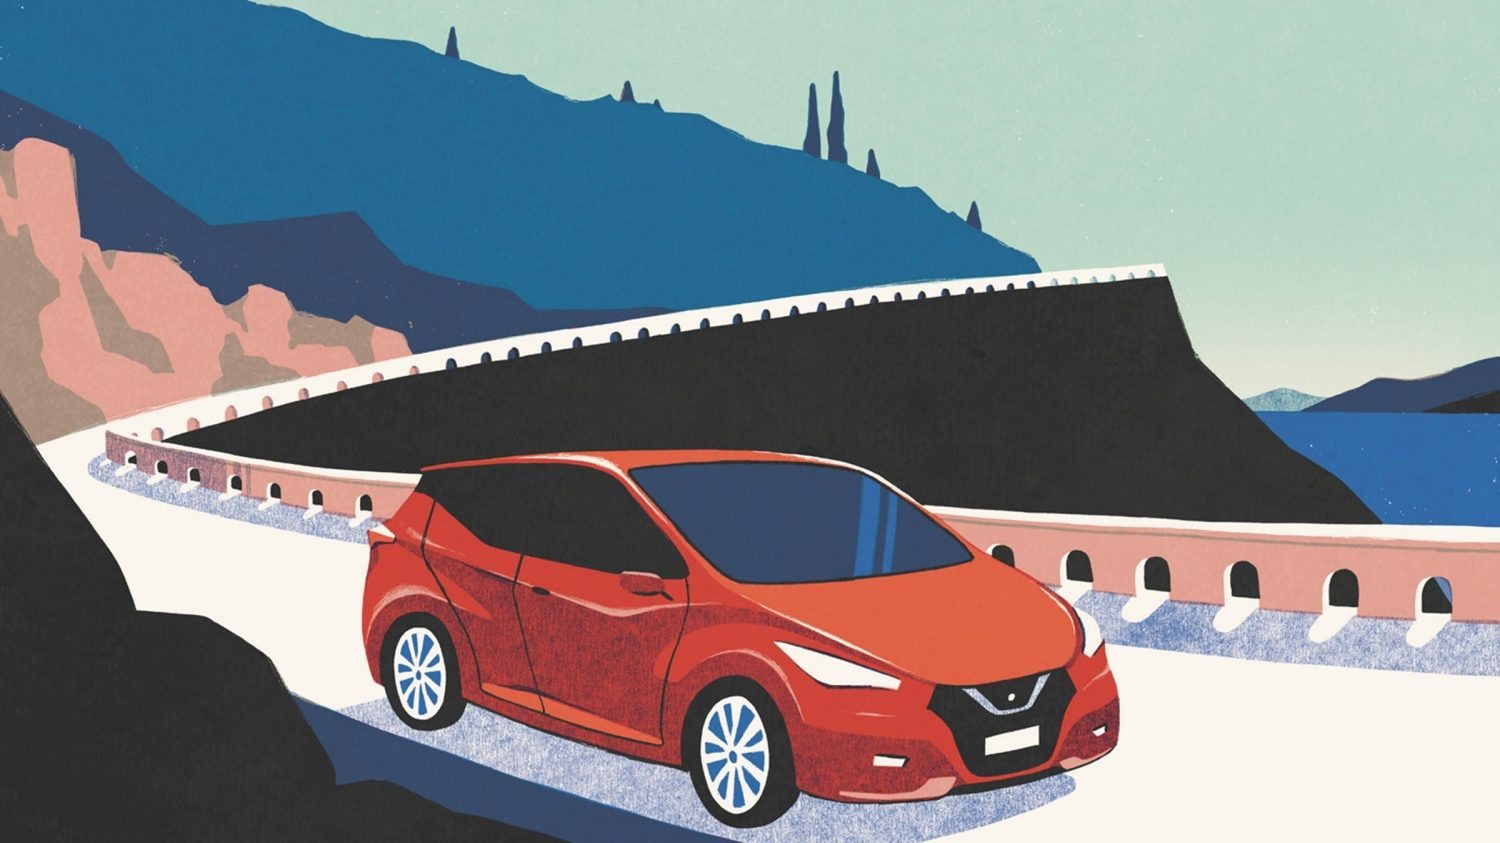 Nissan MICRA 2017 – illustrationer av David Doran